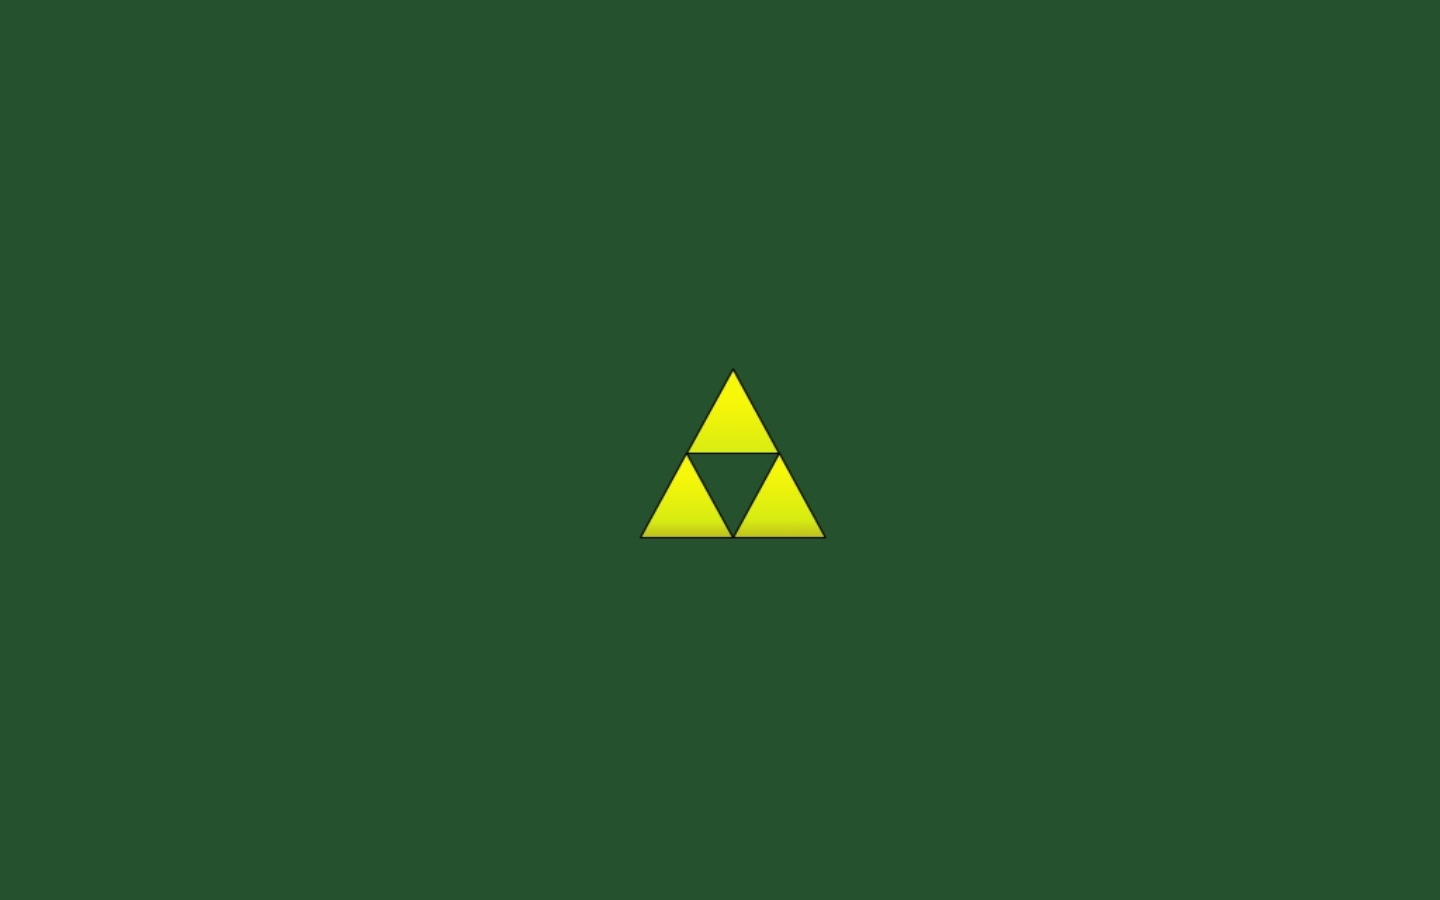 zelda minimalist wallpaper - photo #1